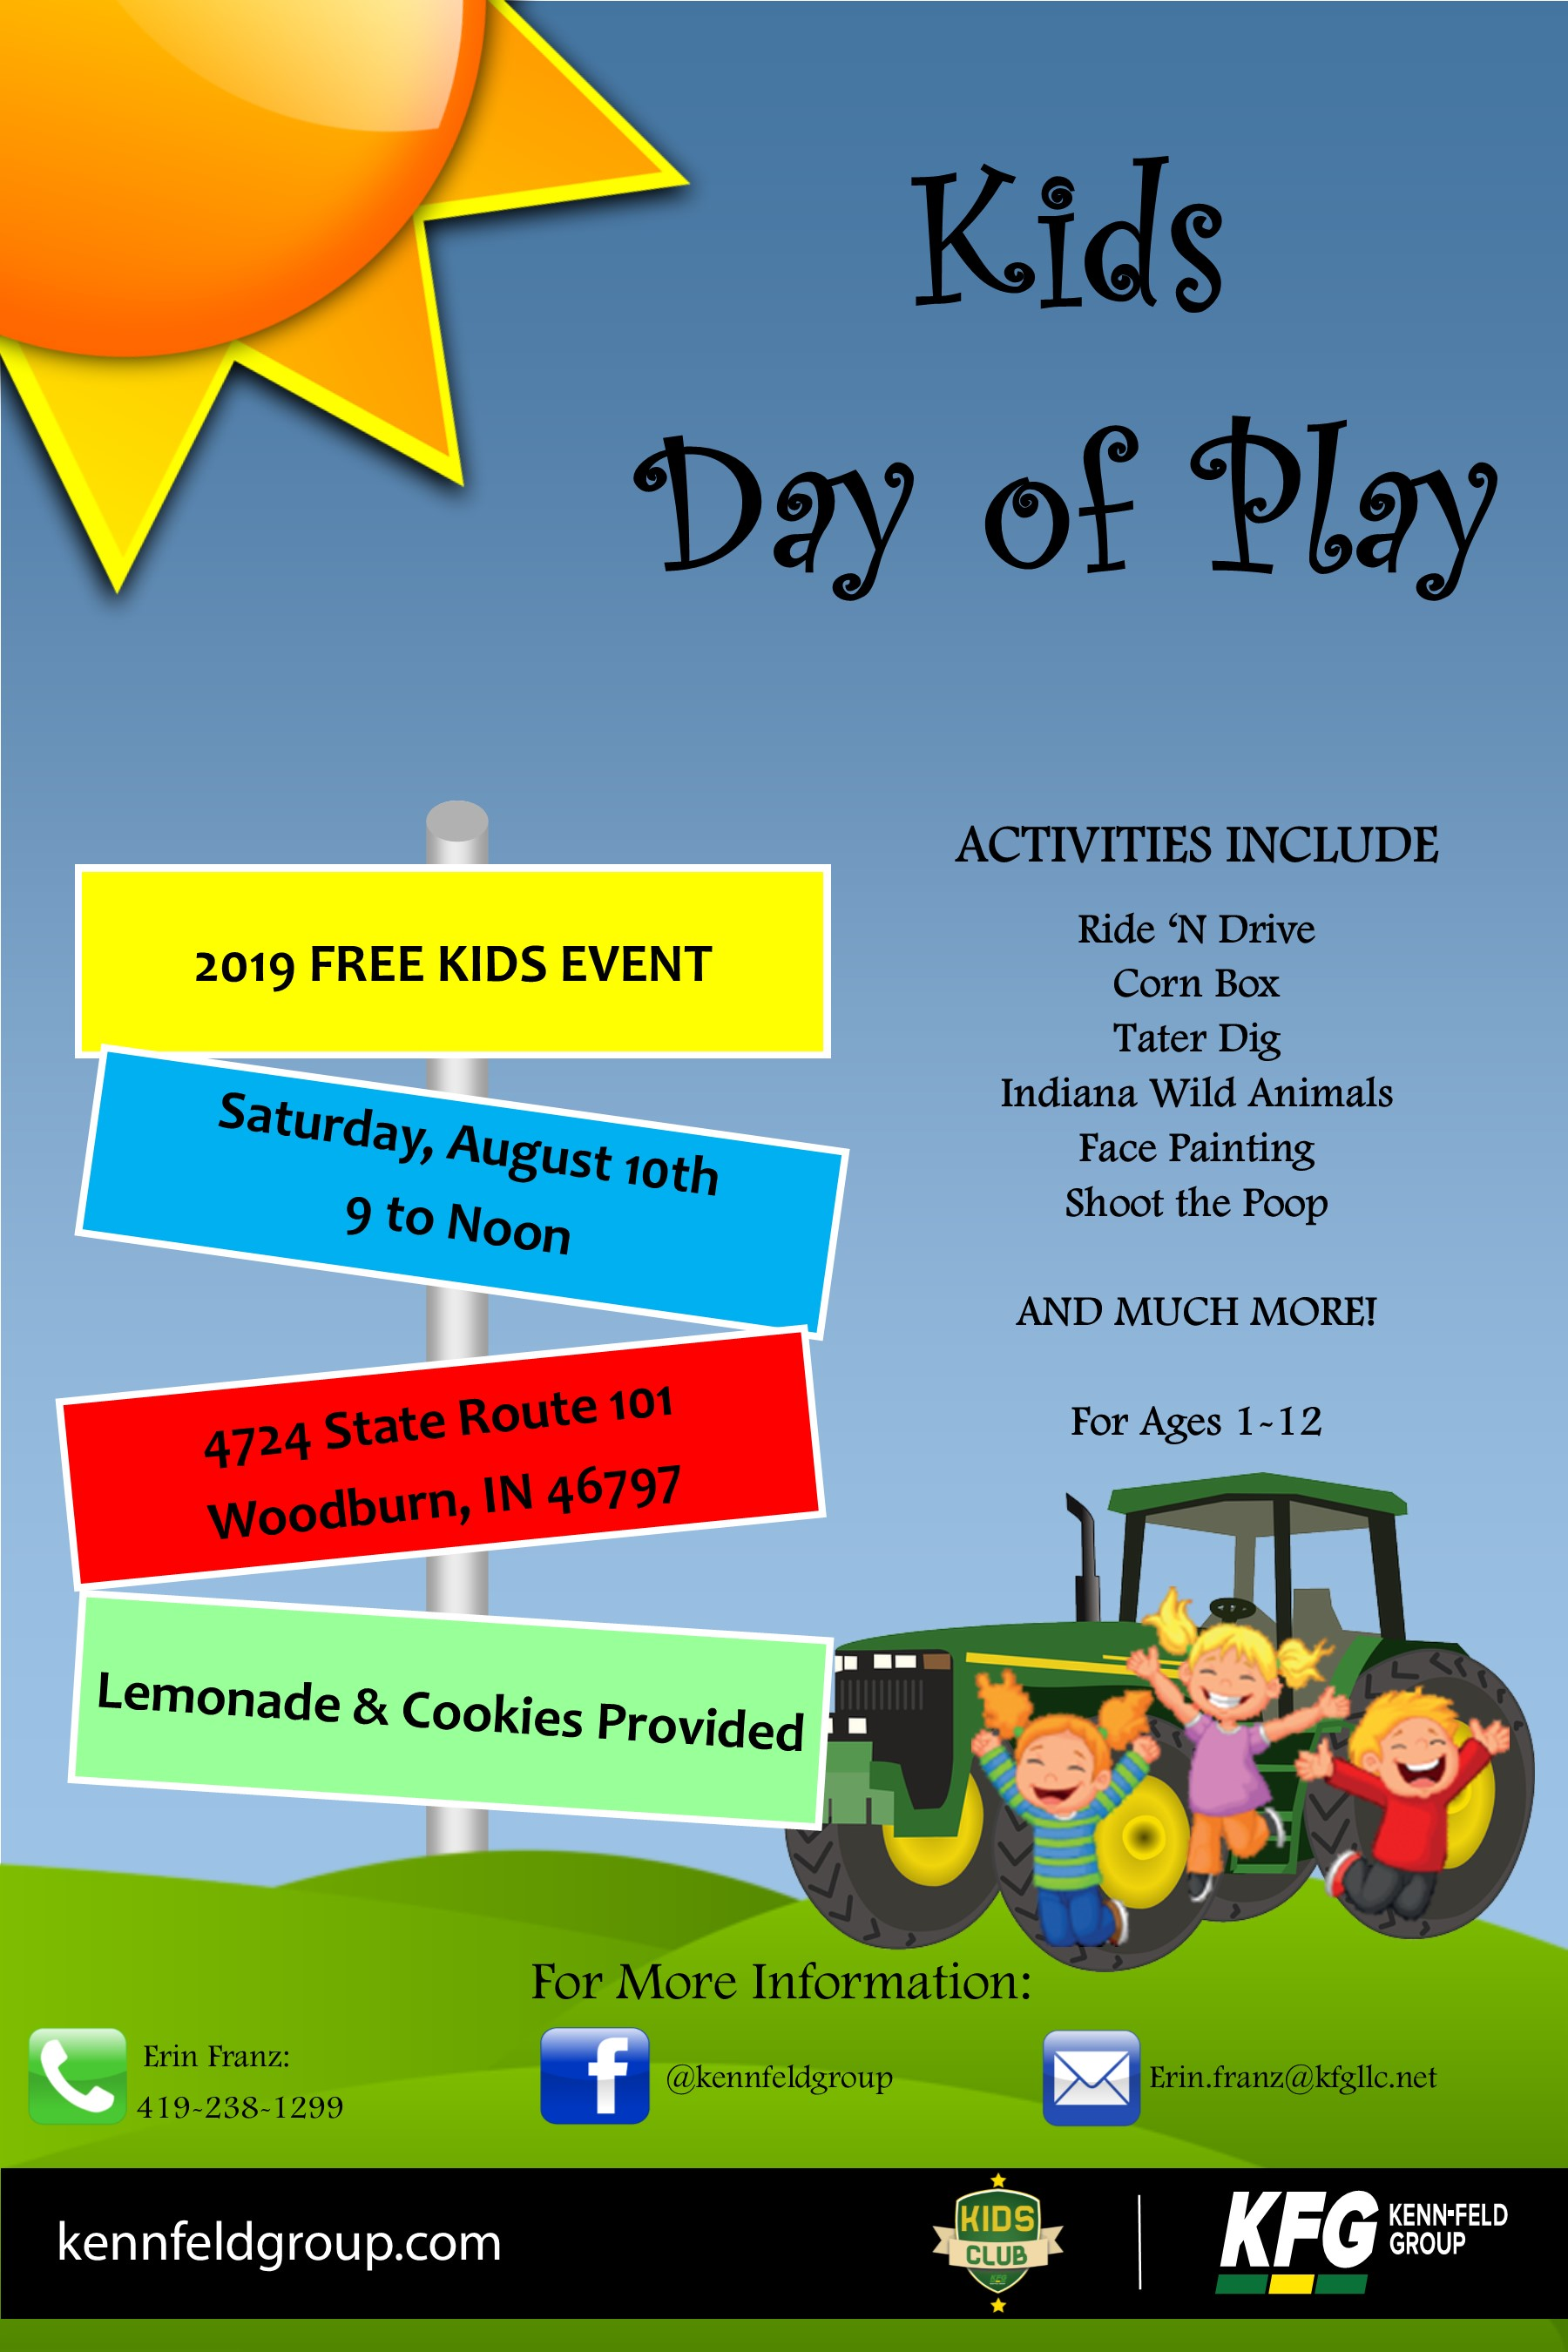 Kids Day of Play